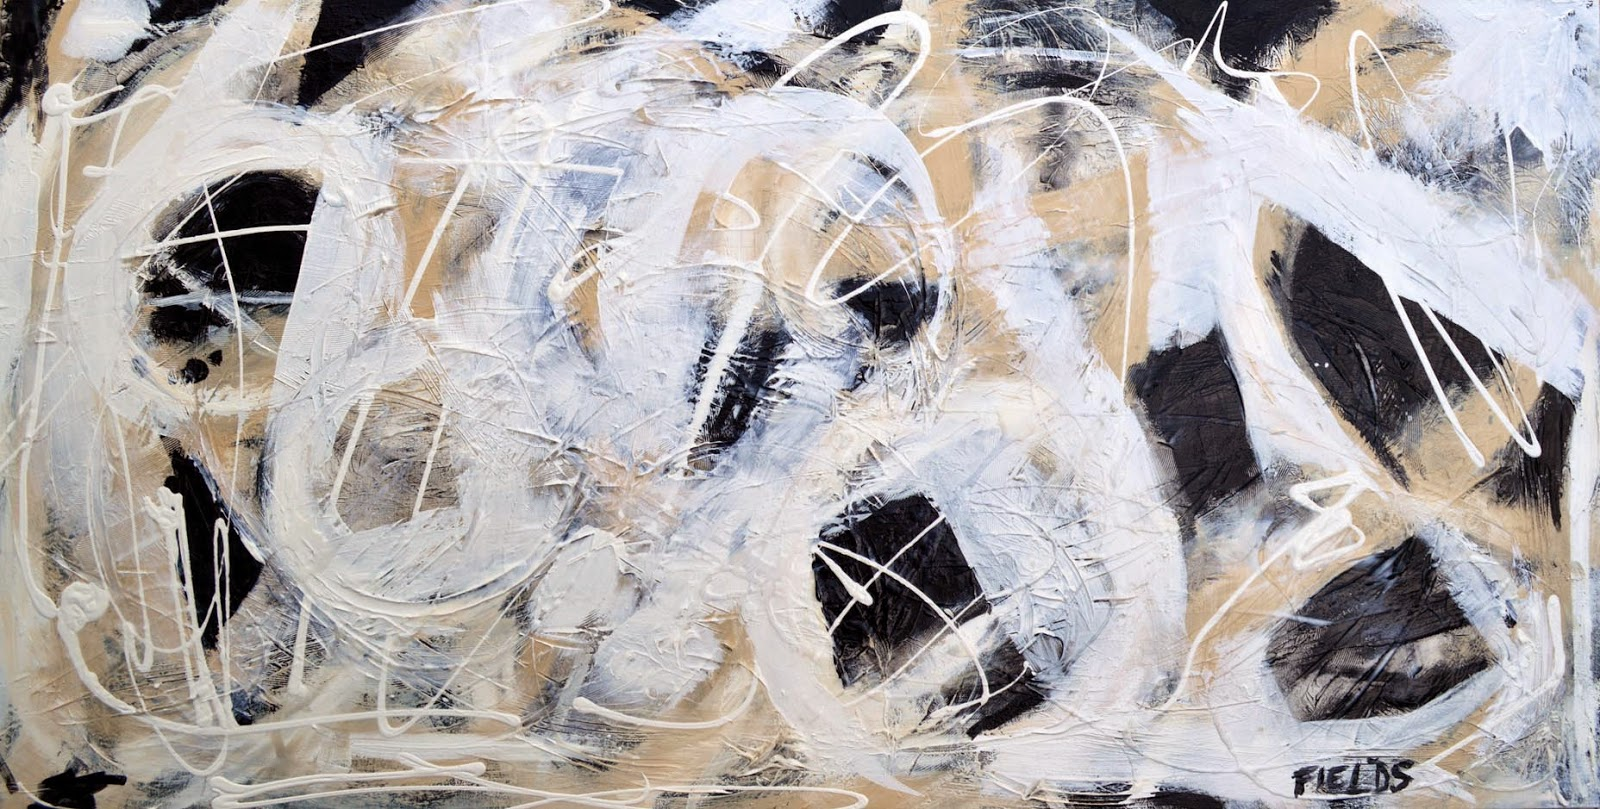 https://www.etsy.com/listing/205060331/original-black-white-abstract-painting?ref=shop_home_active_1